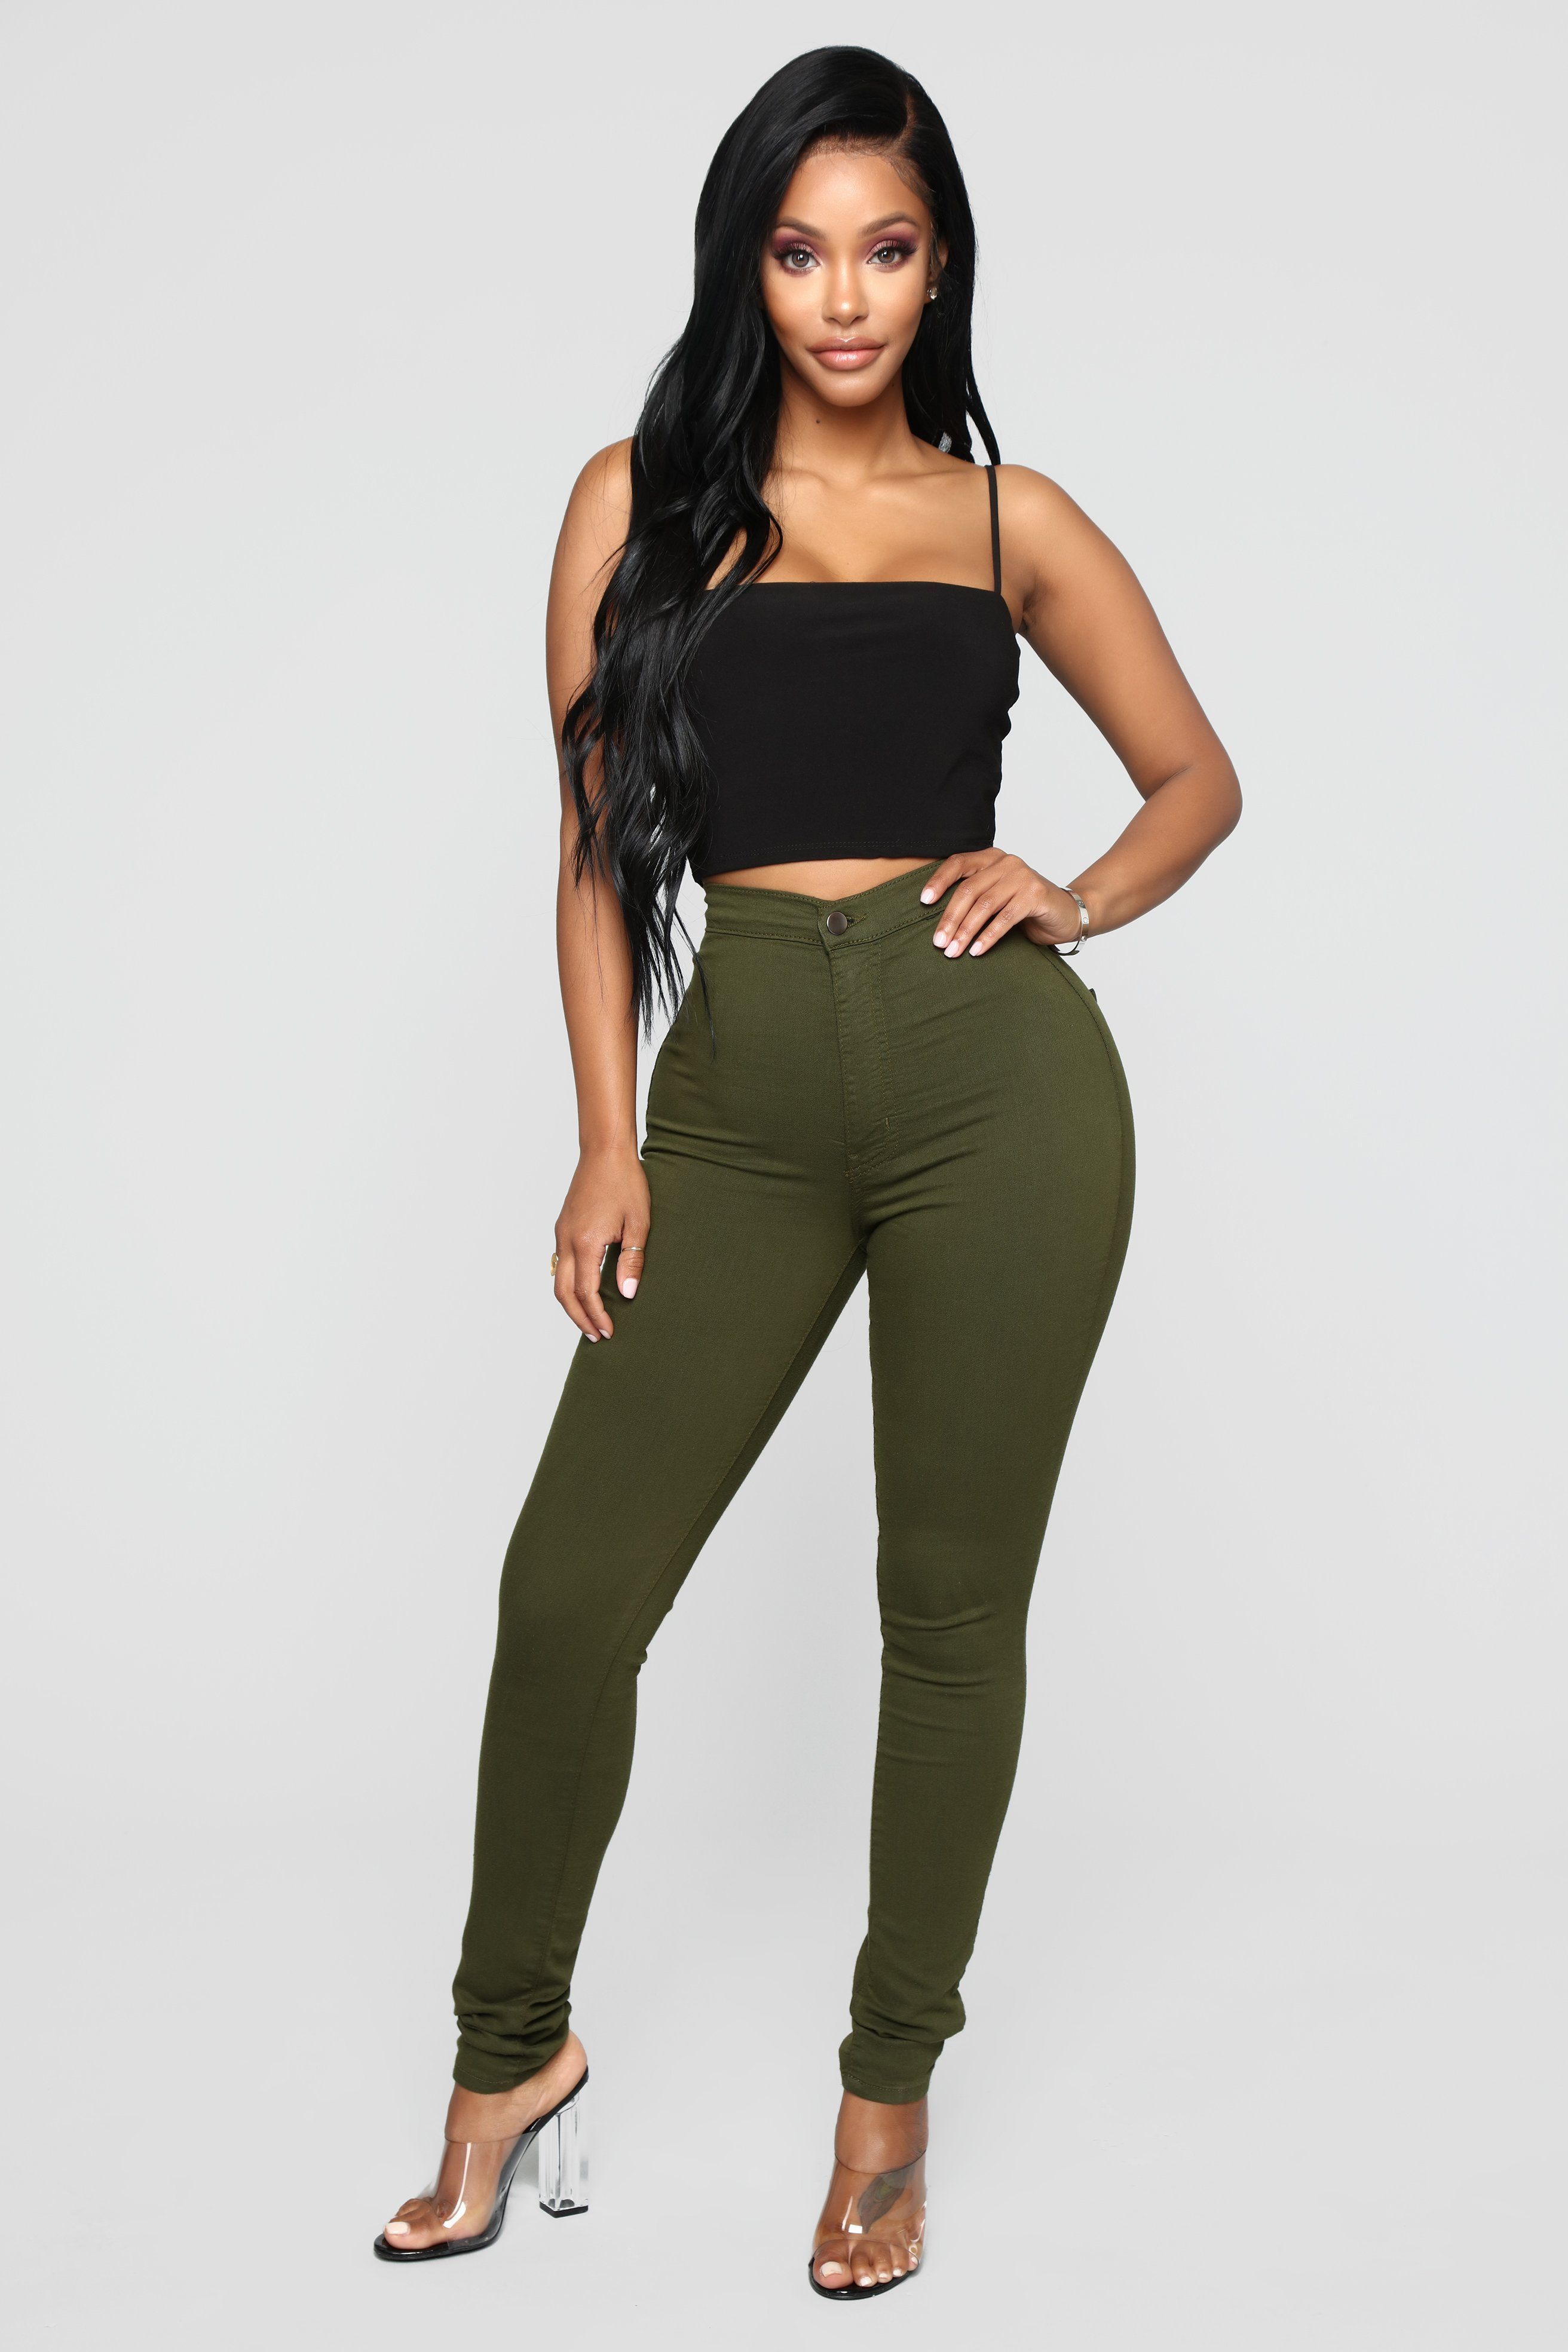 397cbd5e172c Perfectly Classic Jeans - Olive in 2019 | My Closet | High waist ...